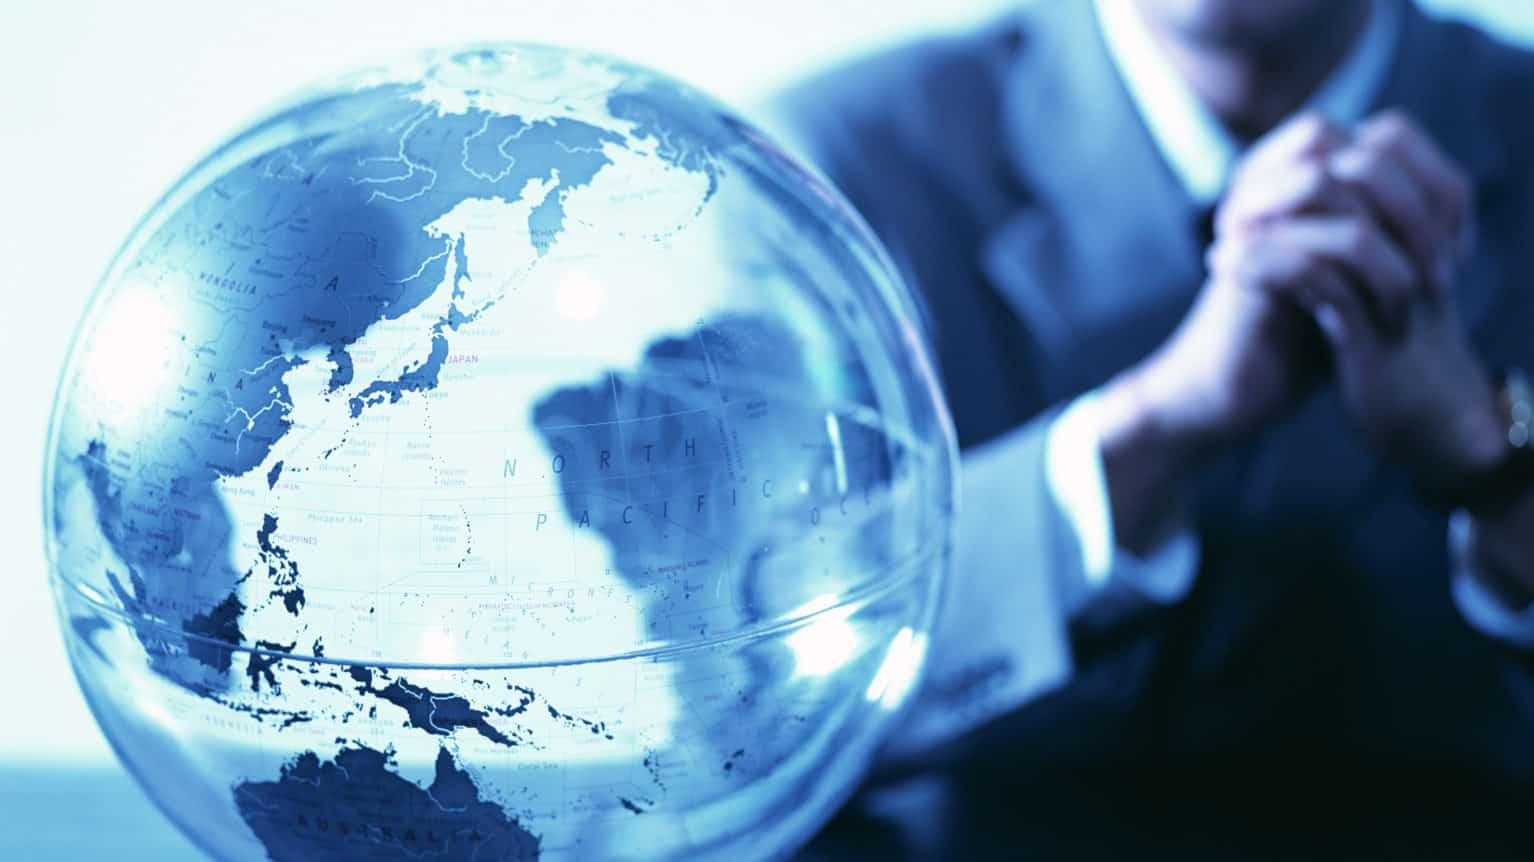 global business concept: man sitting next to a globe